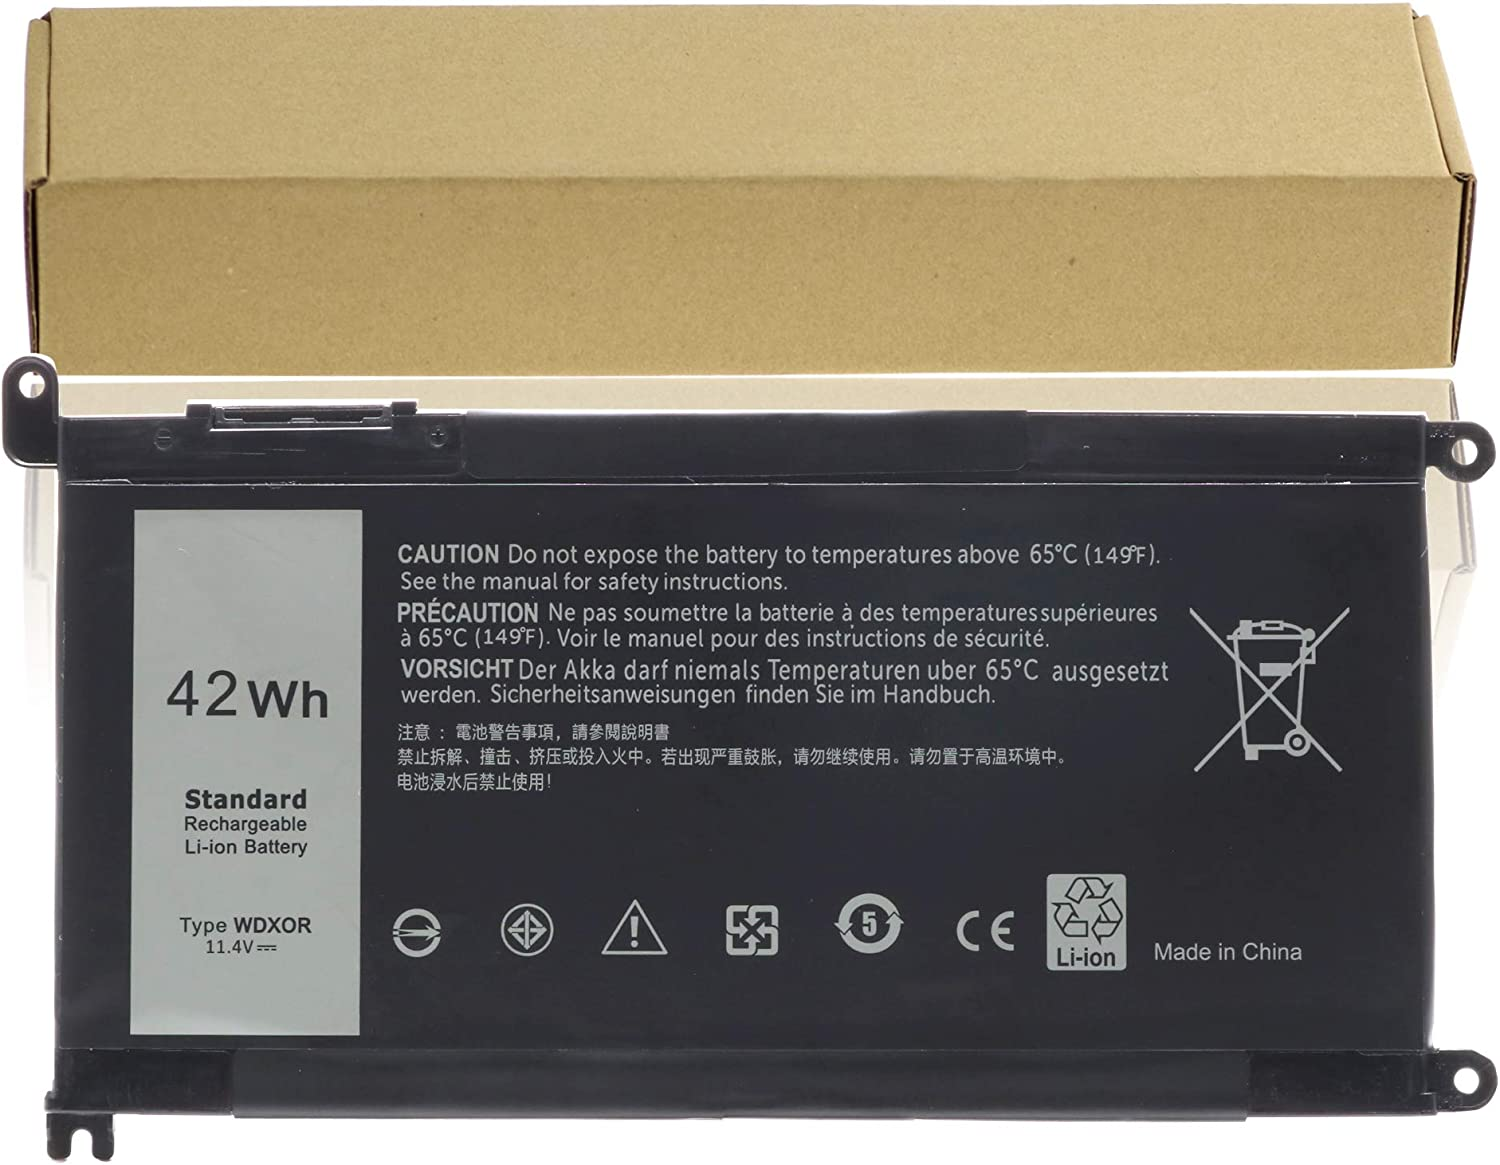 WDX0R Replacement Laptop Battery for Dell Inspiron 13 5368 5378 7368 7378 ; Inspiron 15 5565 5567 5568 5578 7560 7570 7579 7569 P58F; Inspiron 17 5765 5767